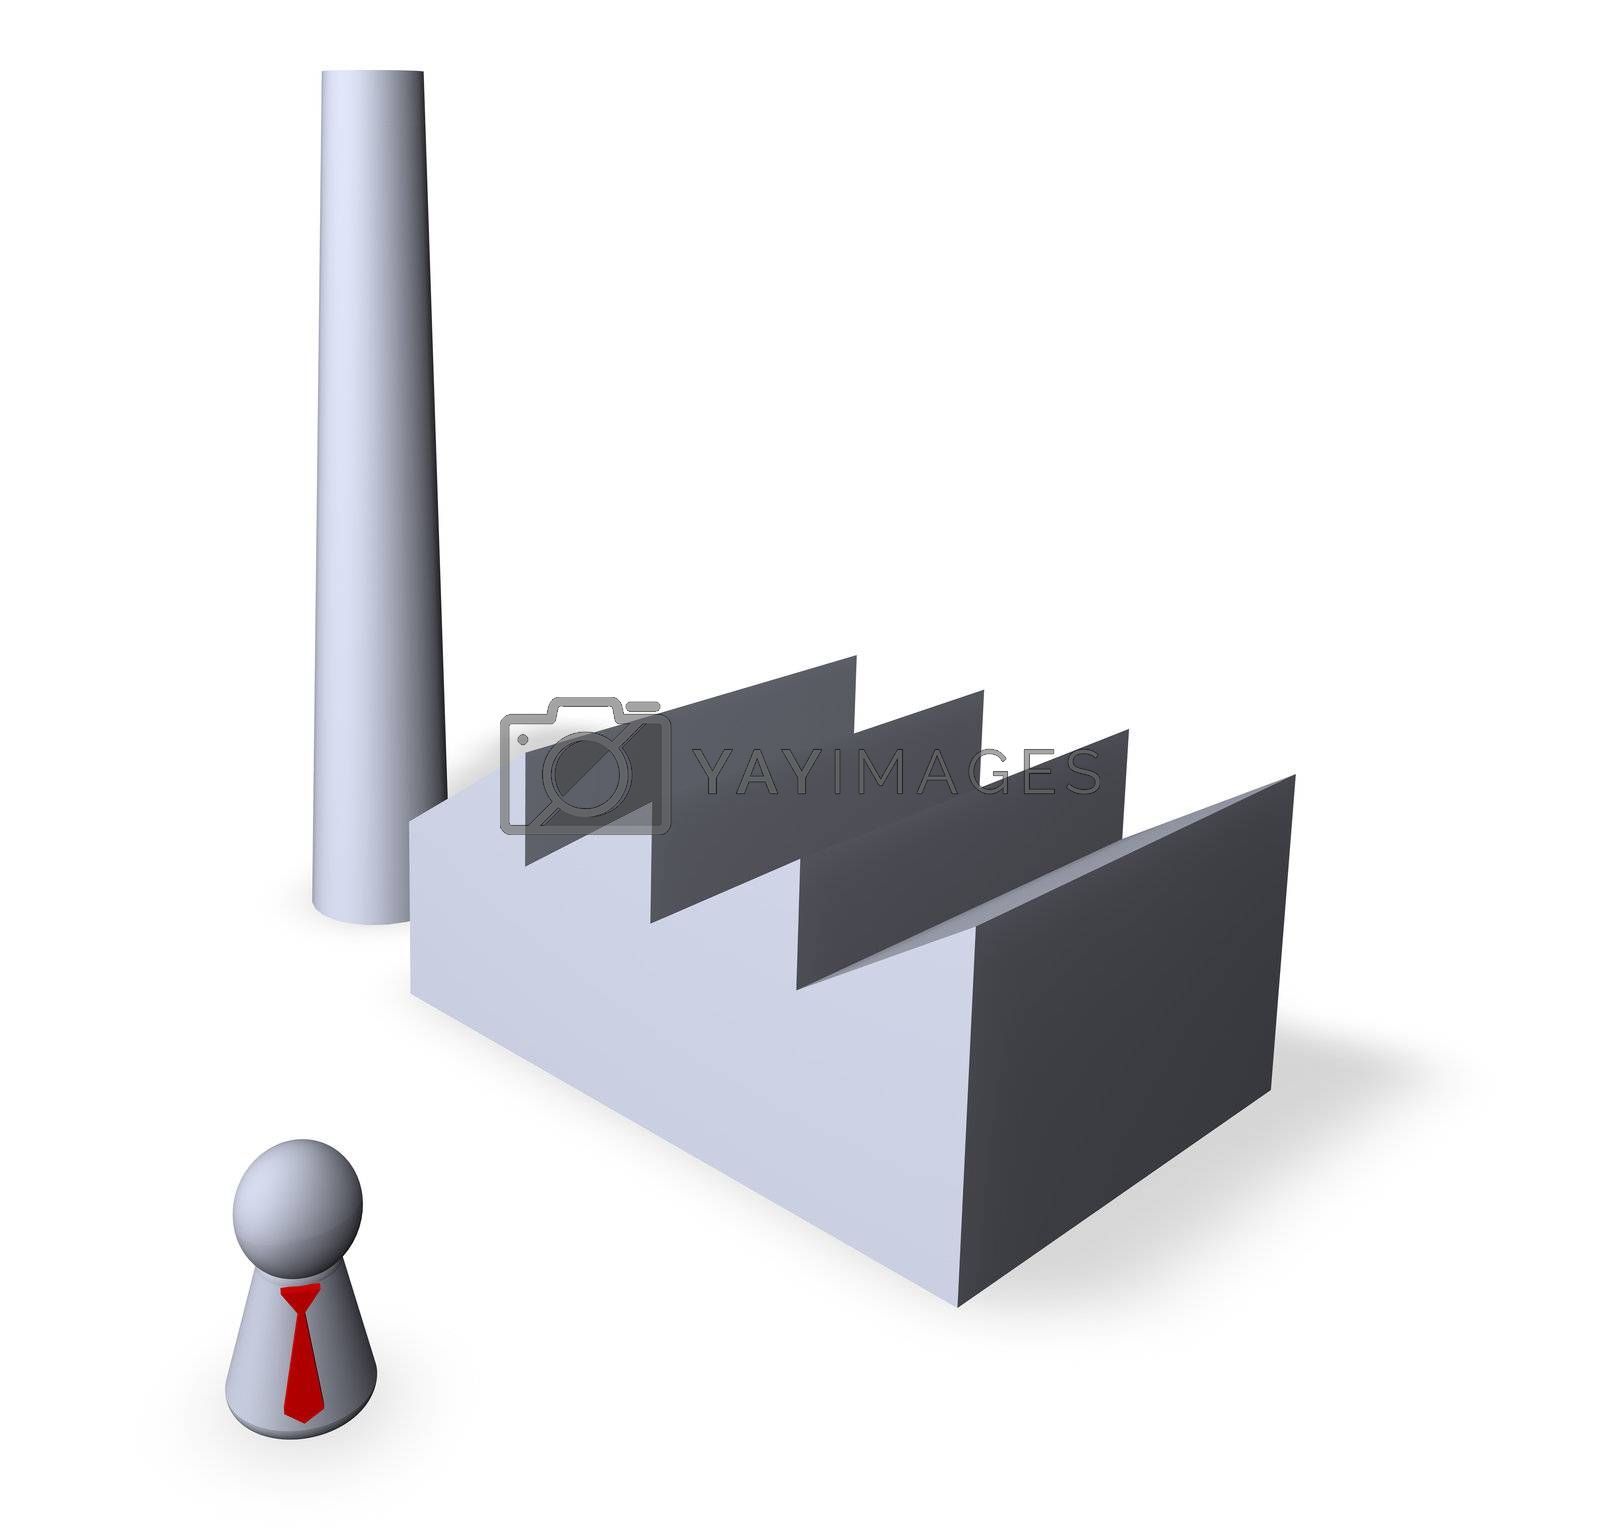 play figure with nred tie and factory buildings